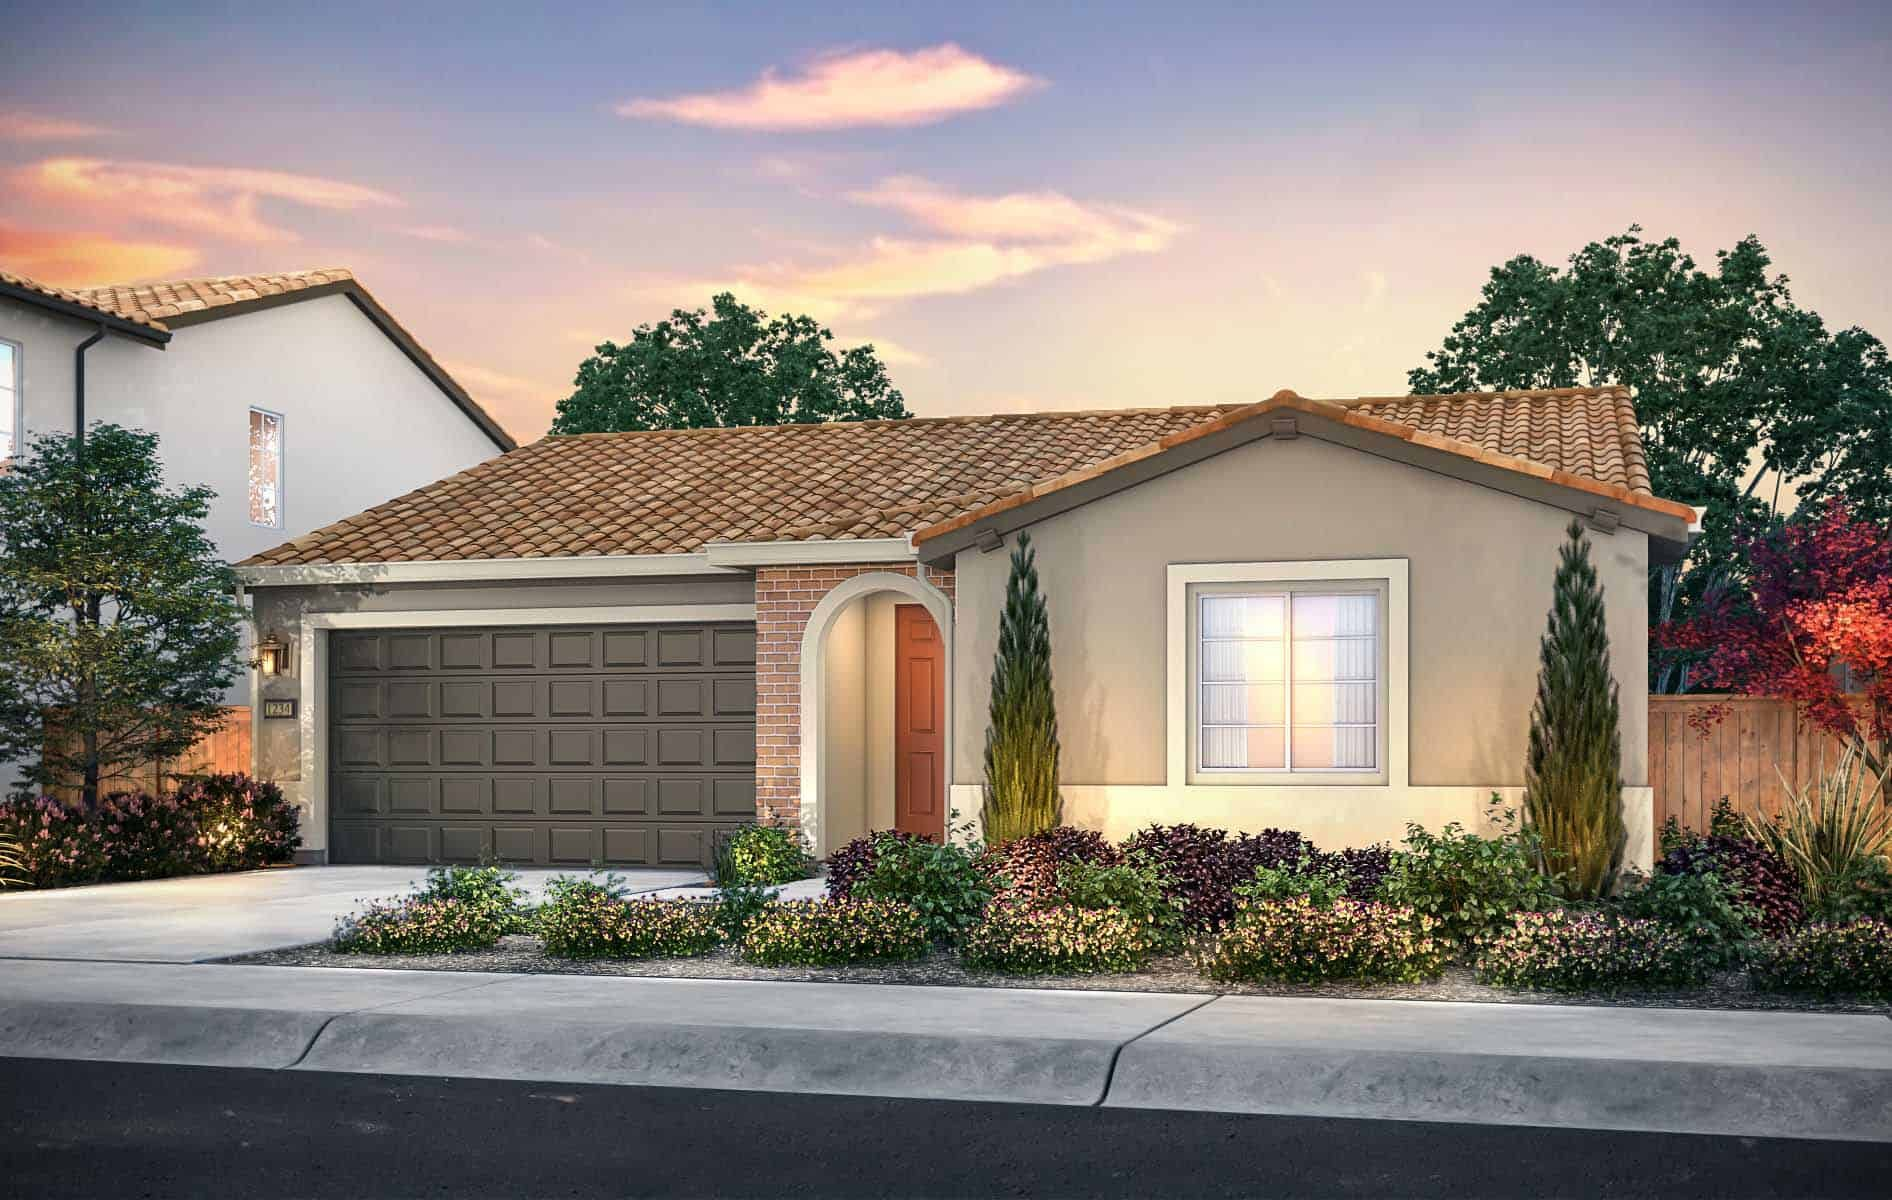 Plan 1 Exterior Style: Adobe Ranch